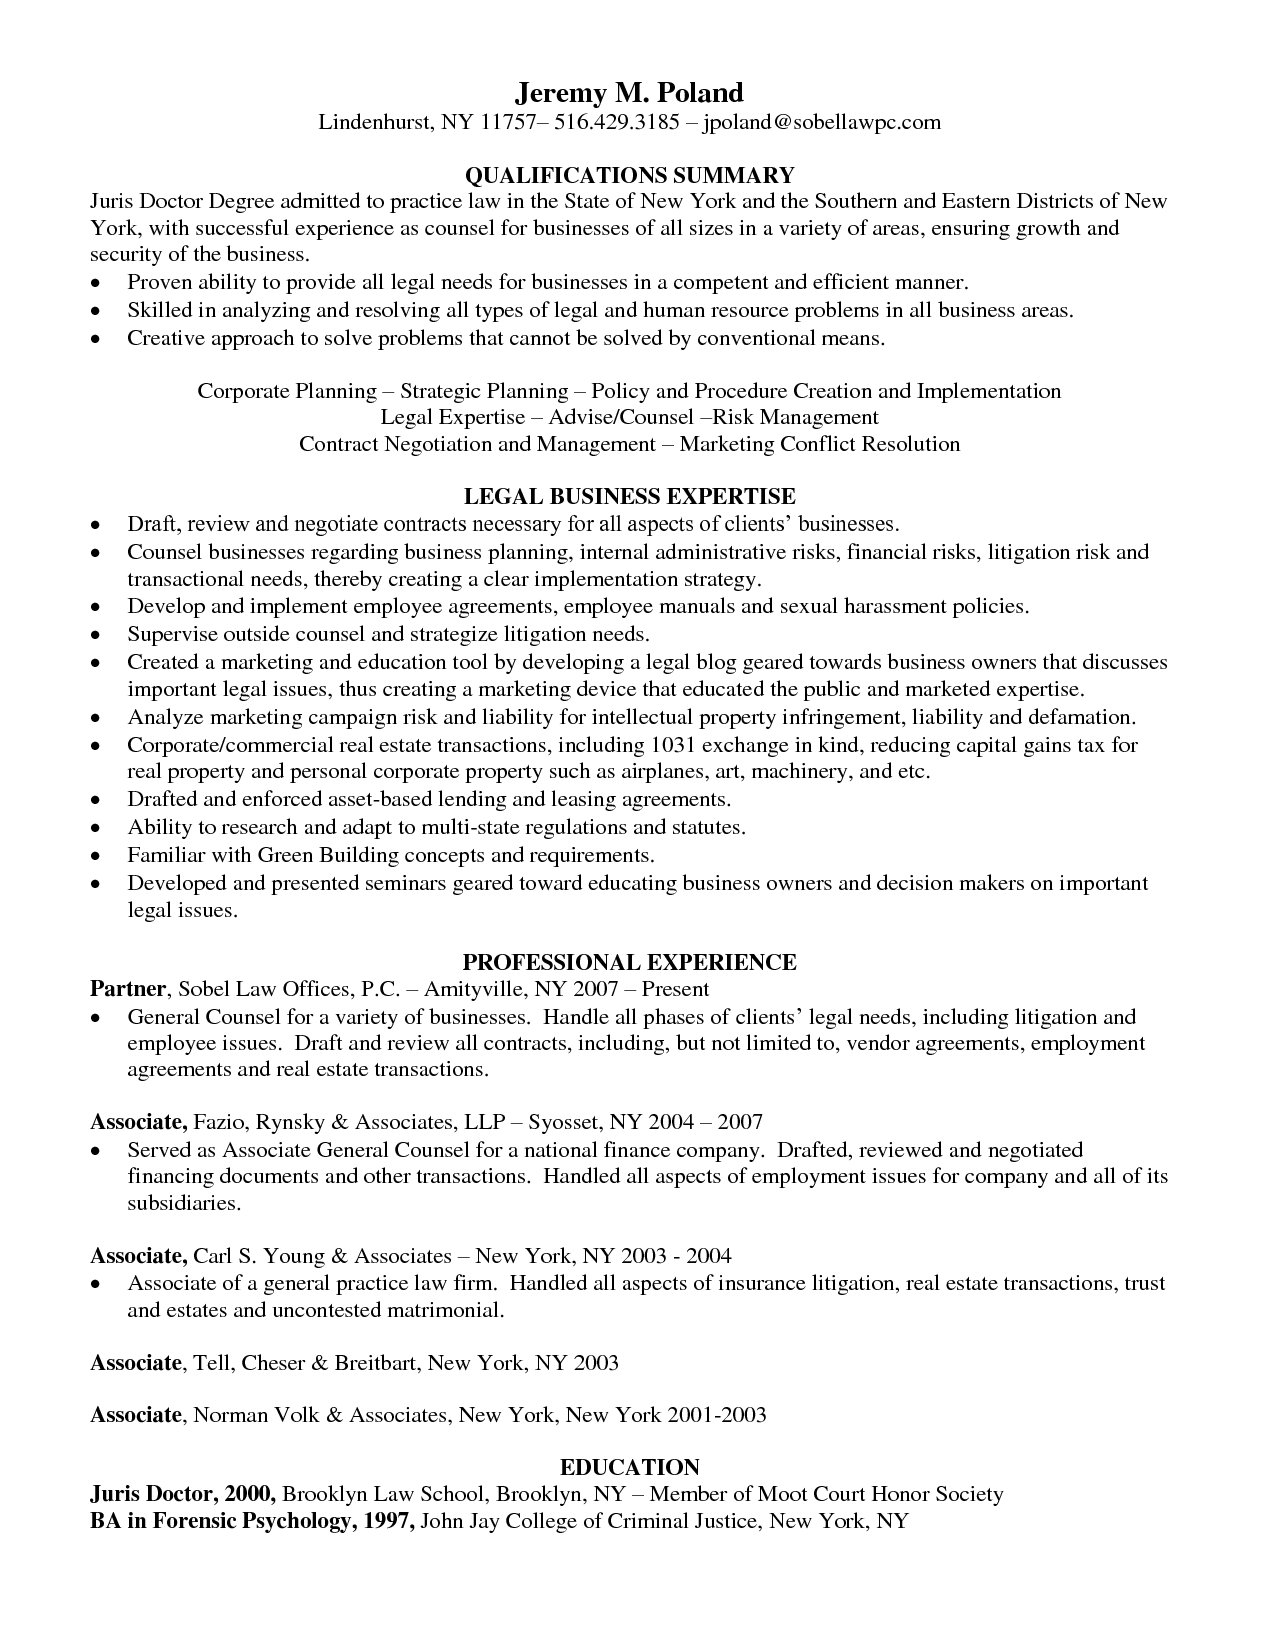 juris doctor resume general counsel business attorney in